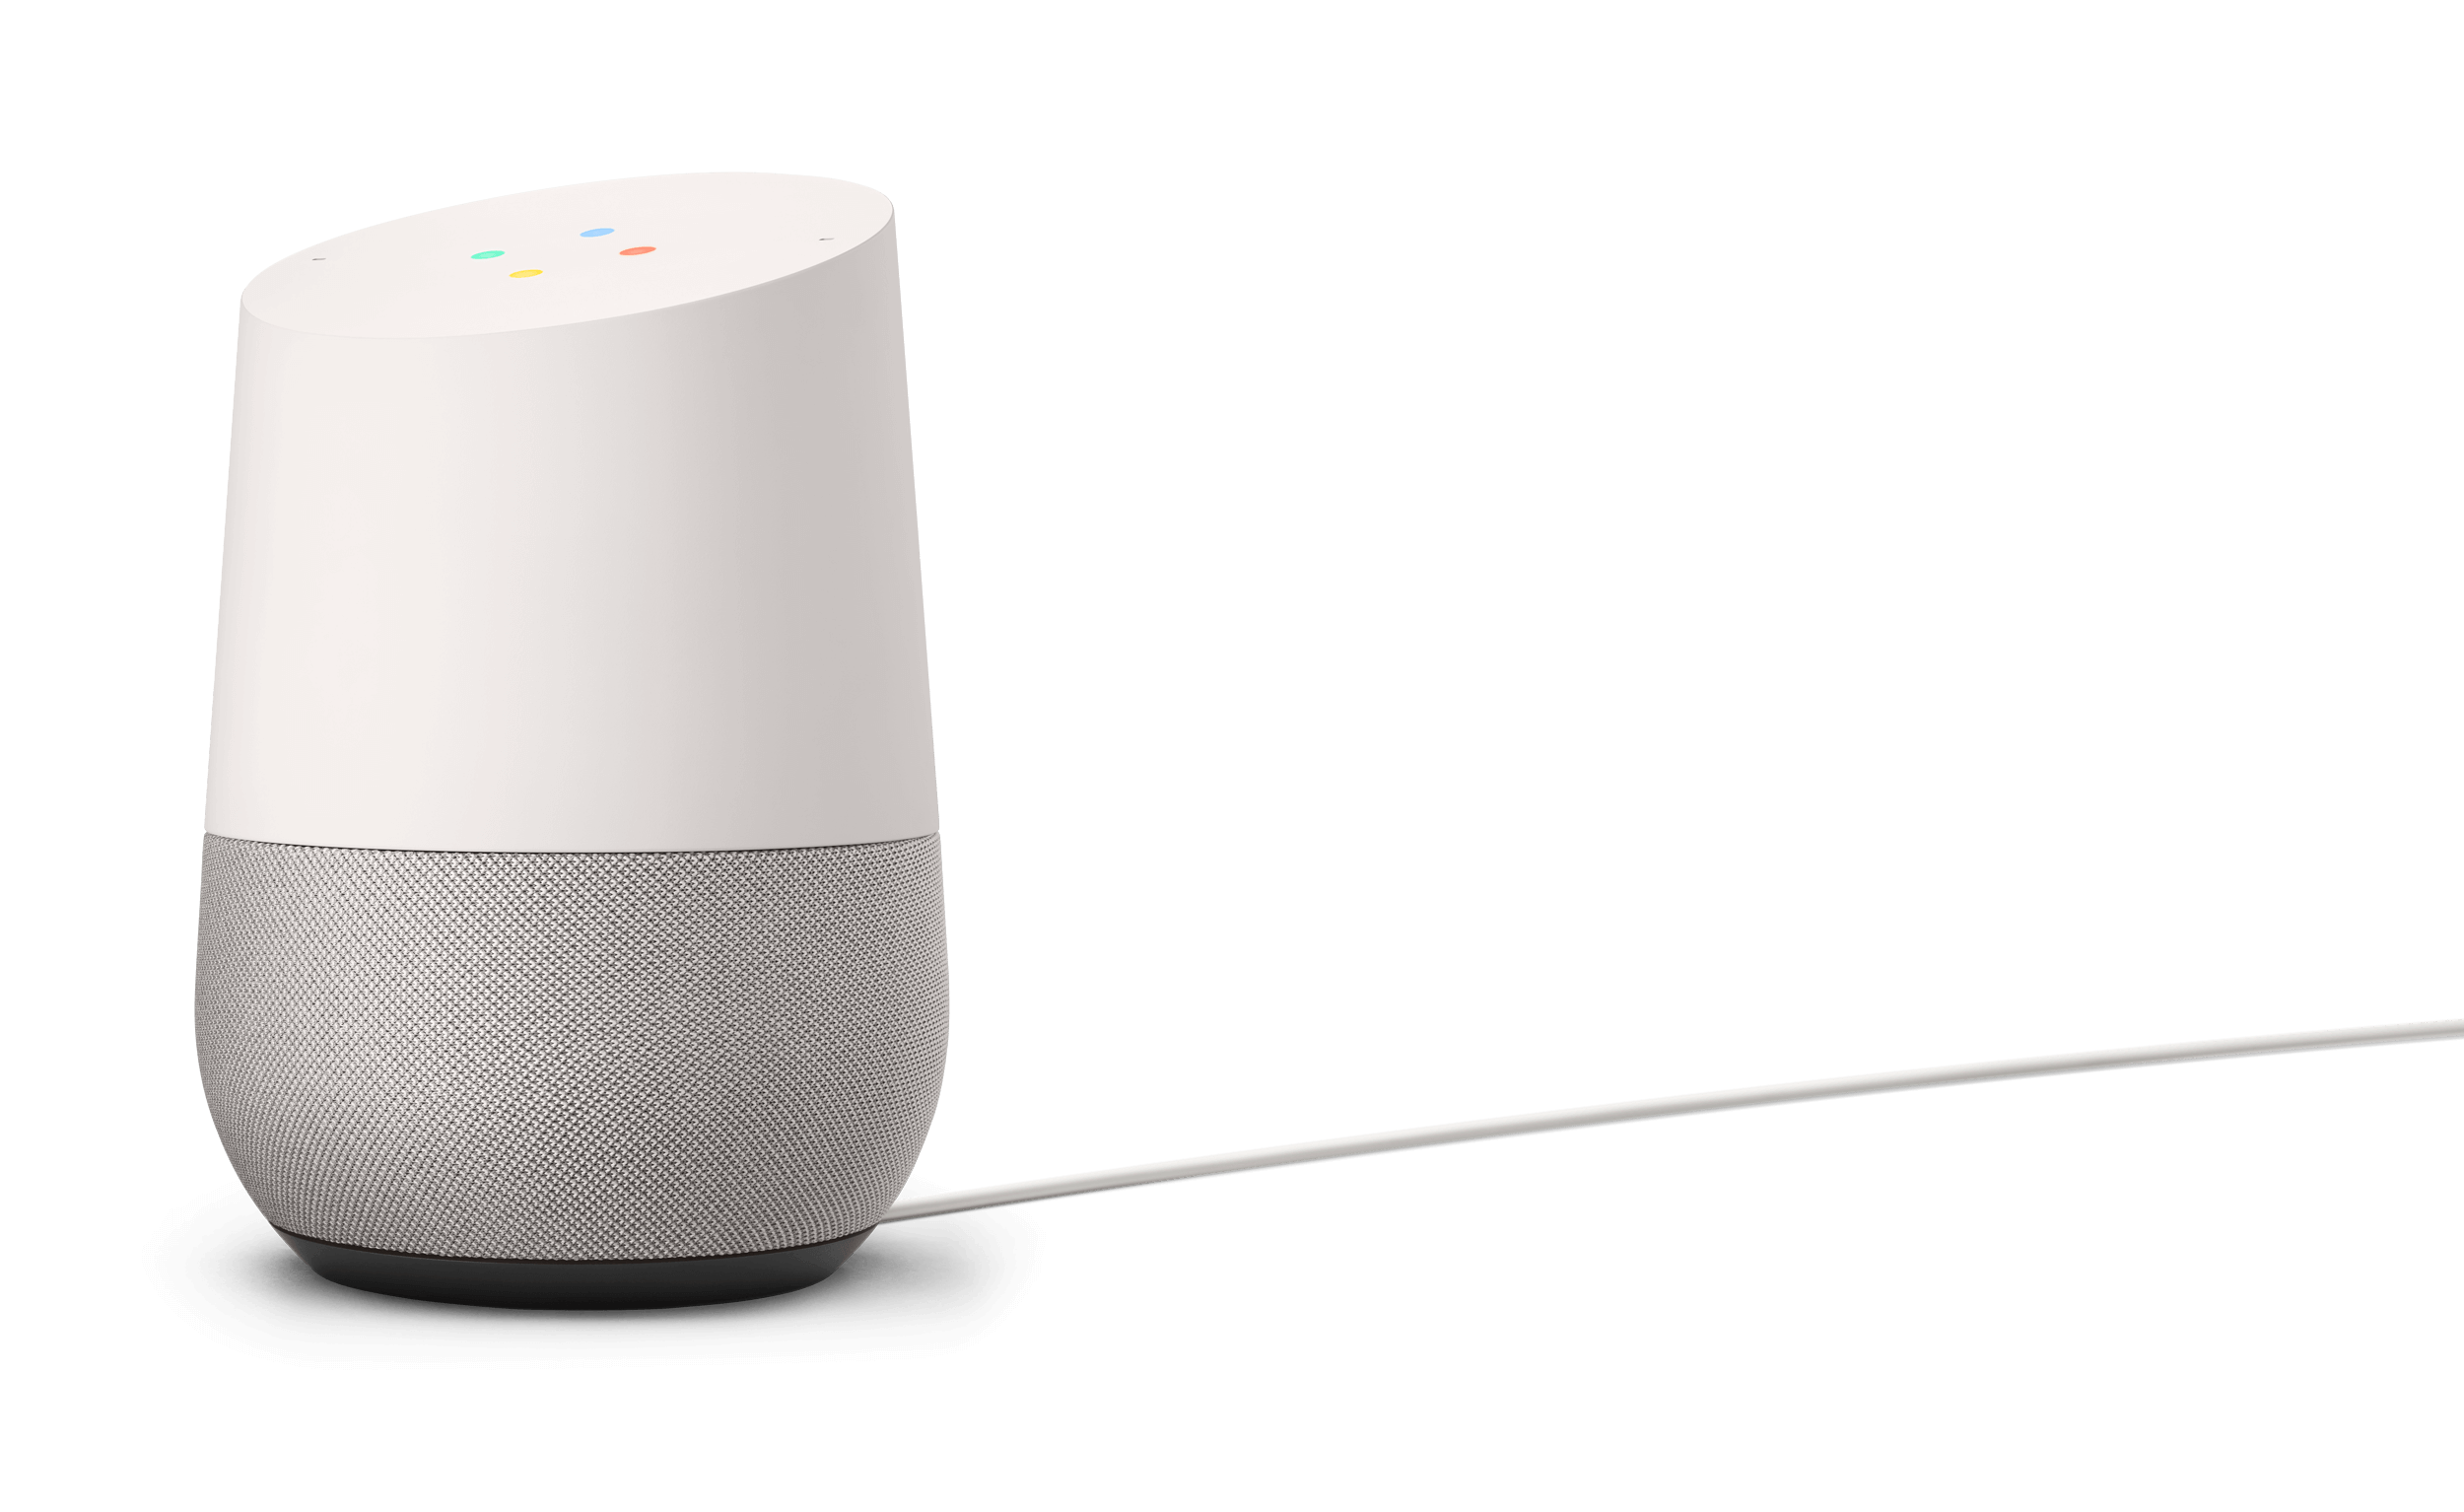 Google Home - Your voice-activated personal assistant